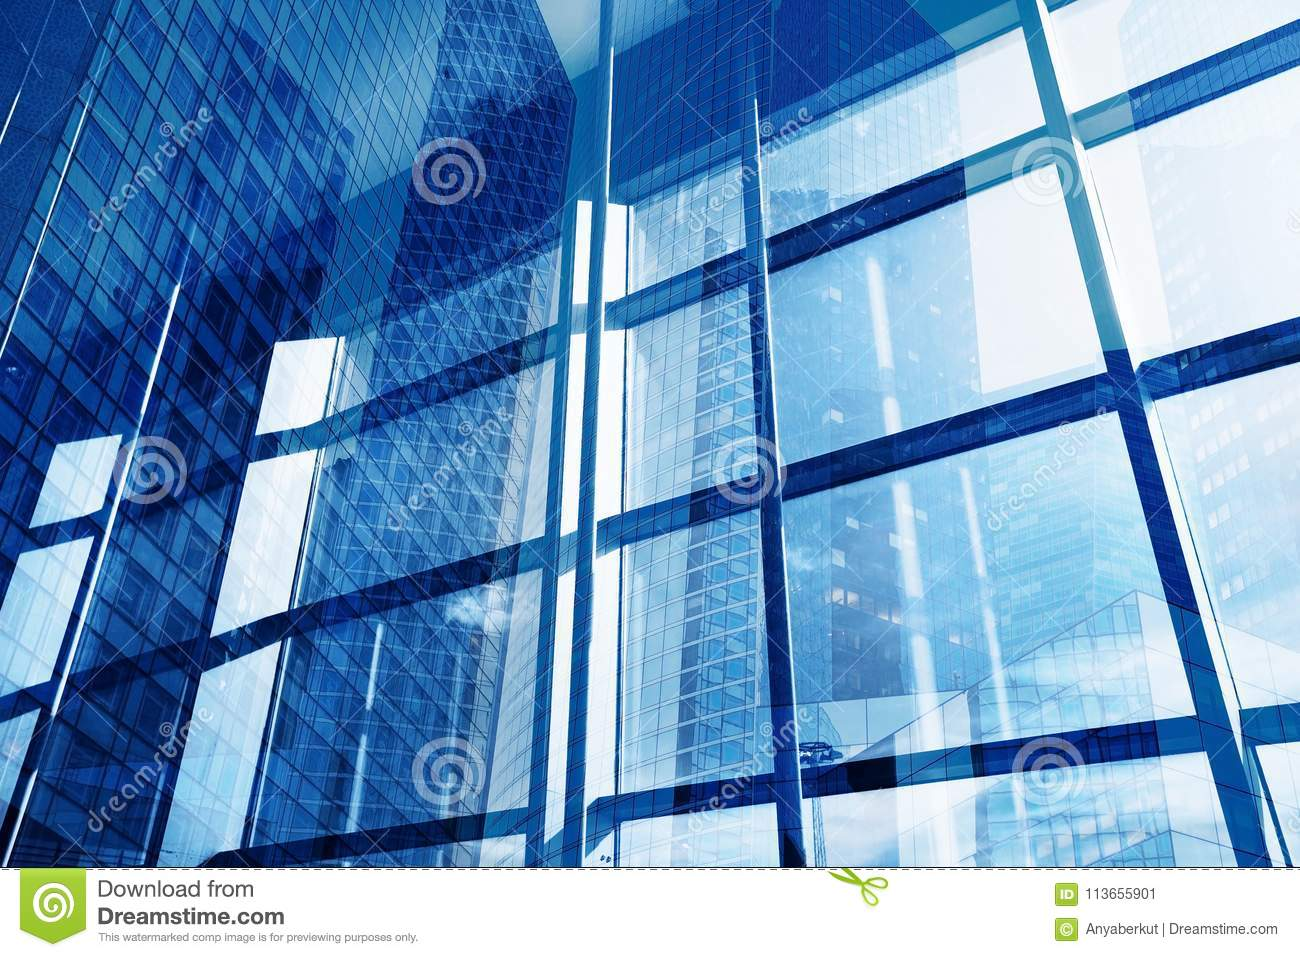 Abstract business building interior, high tech